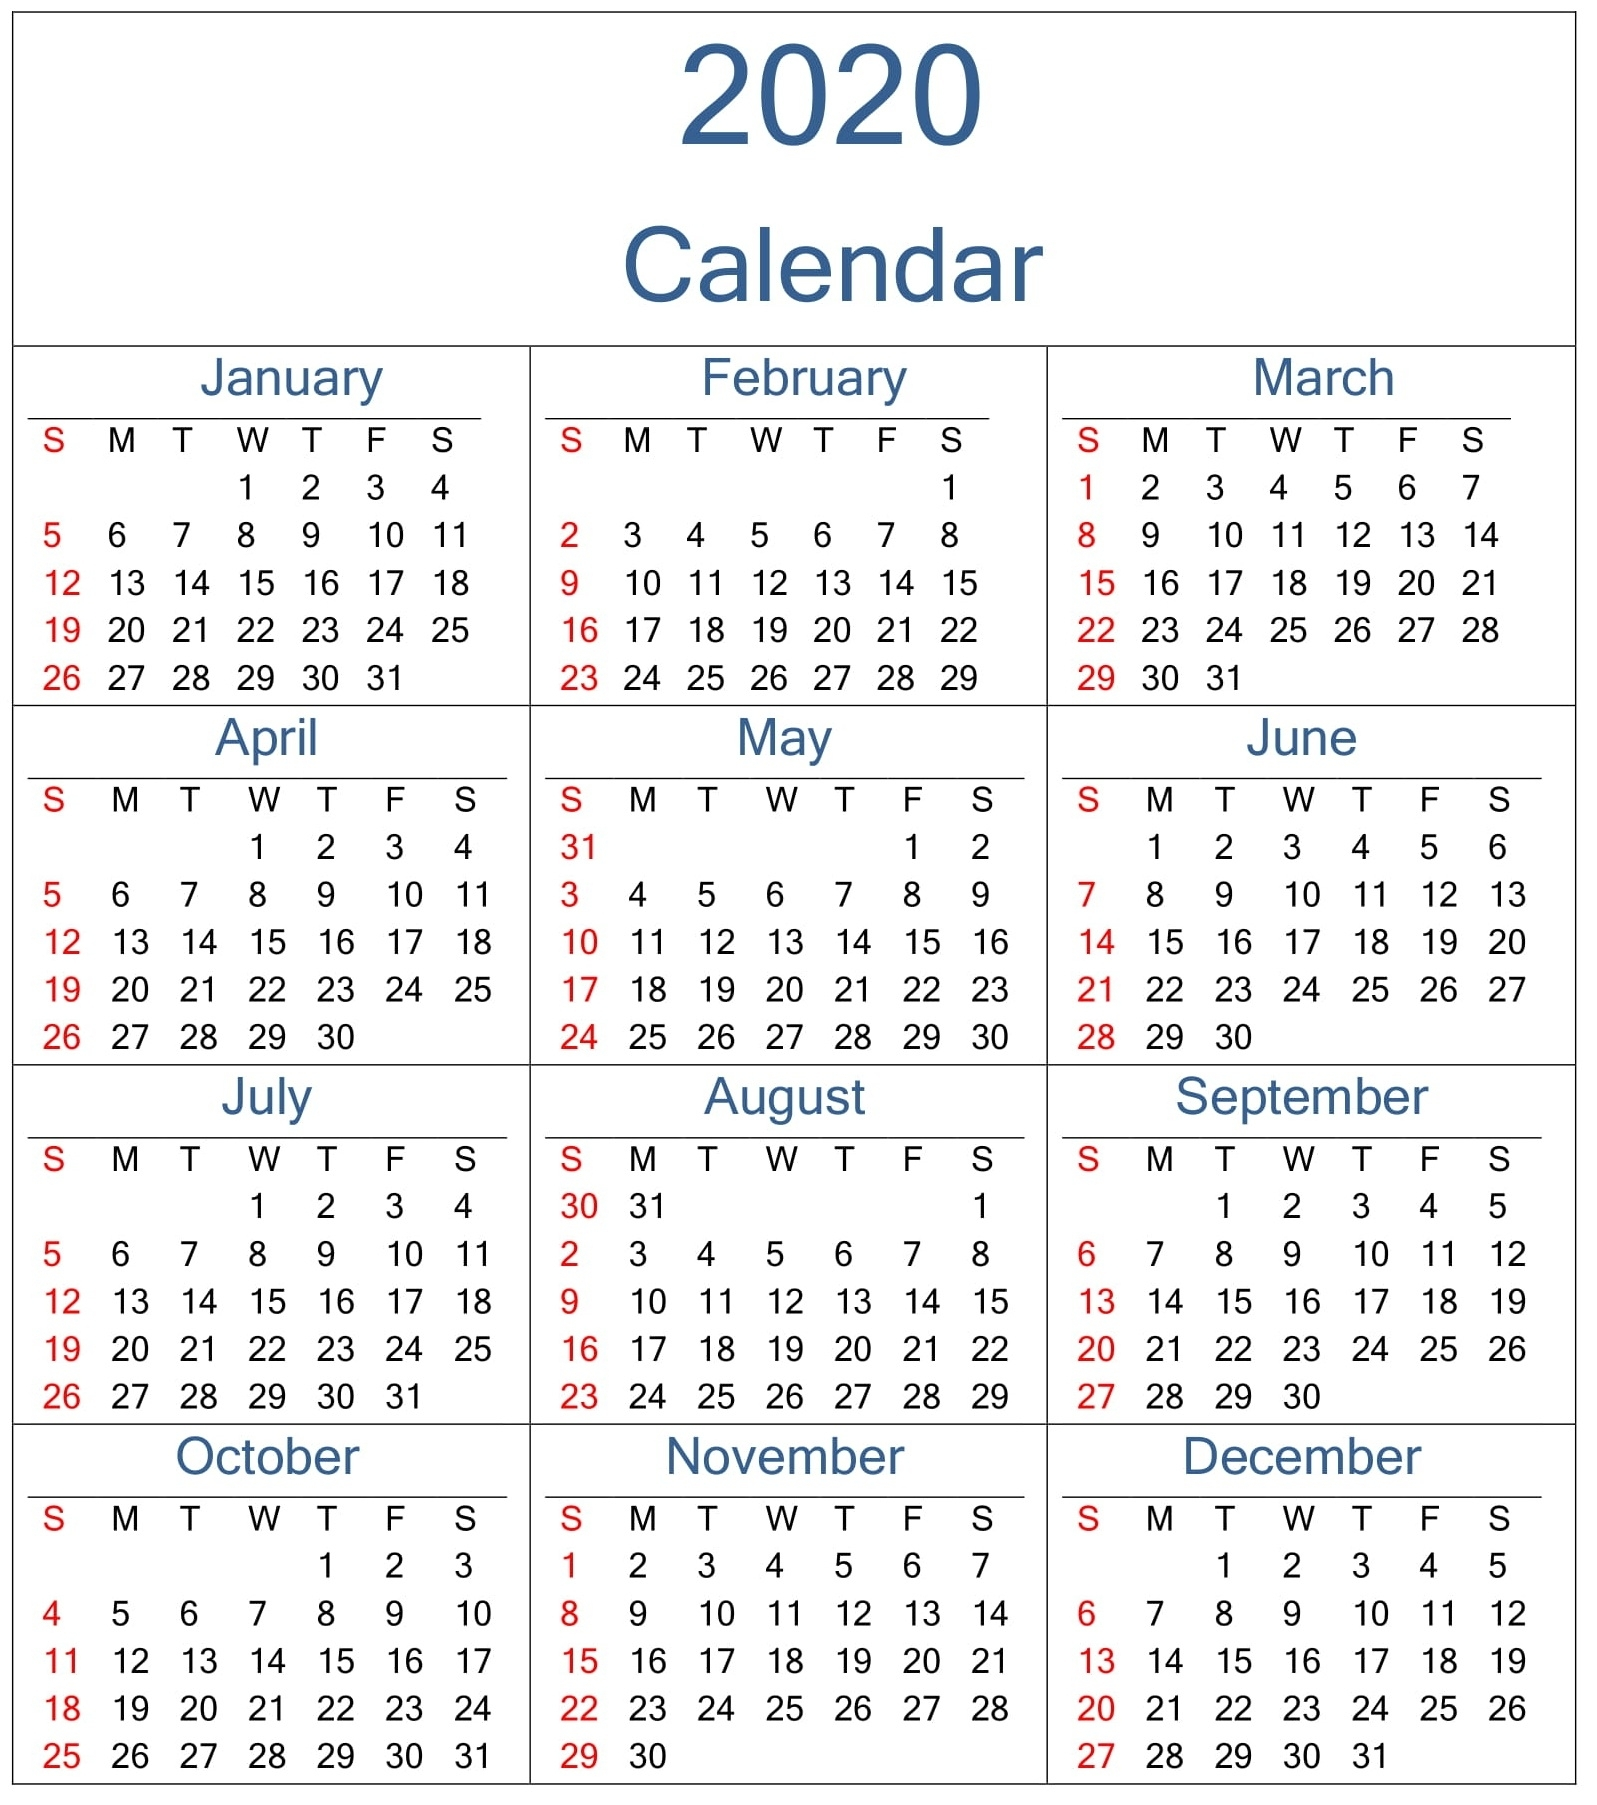 Yearly 2020 Calendar Excel Template - Latest Printable with Yearly Monday To Sunday Calendar 2020 With Week Numbers